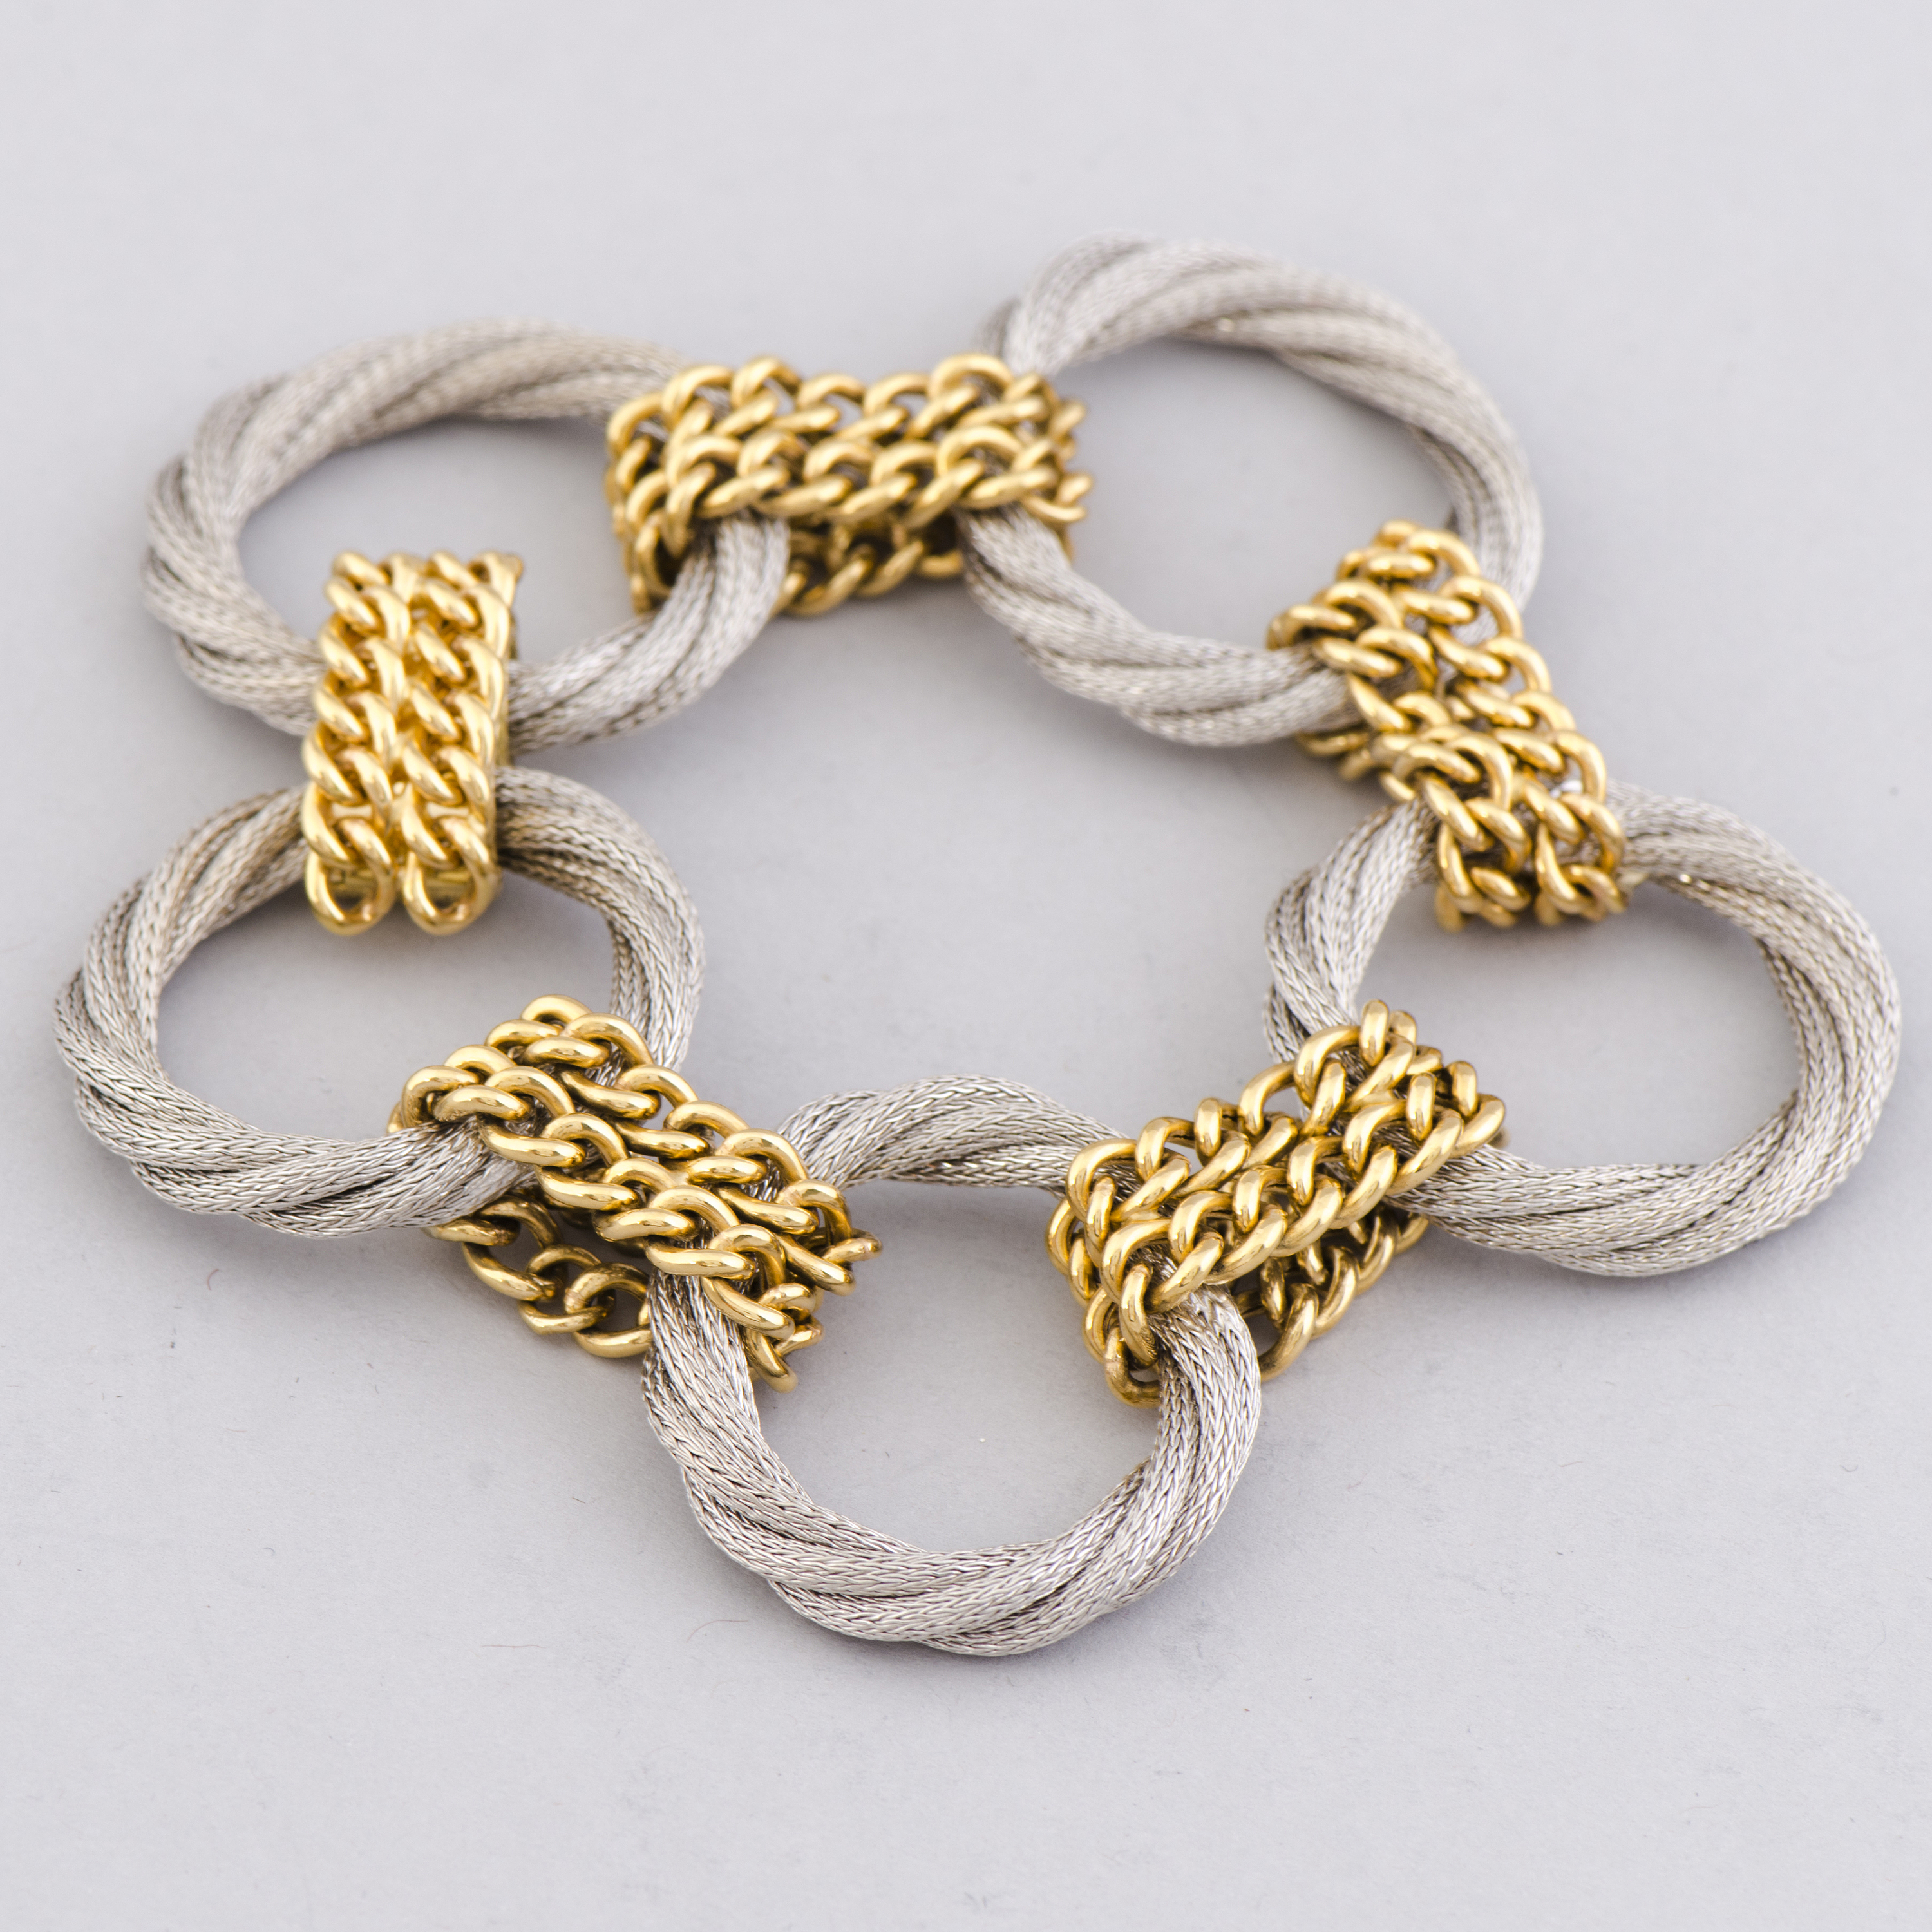 A BRACELET, 18K gold and white gold  Italy, import marks T